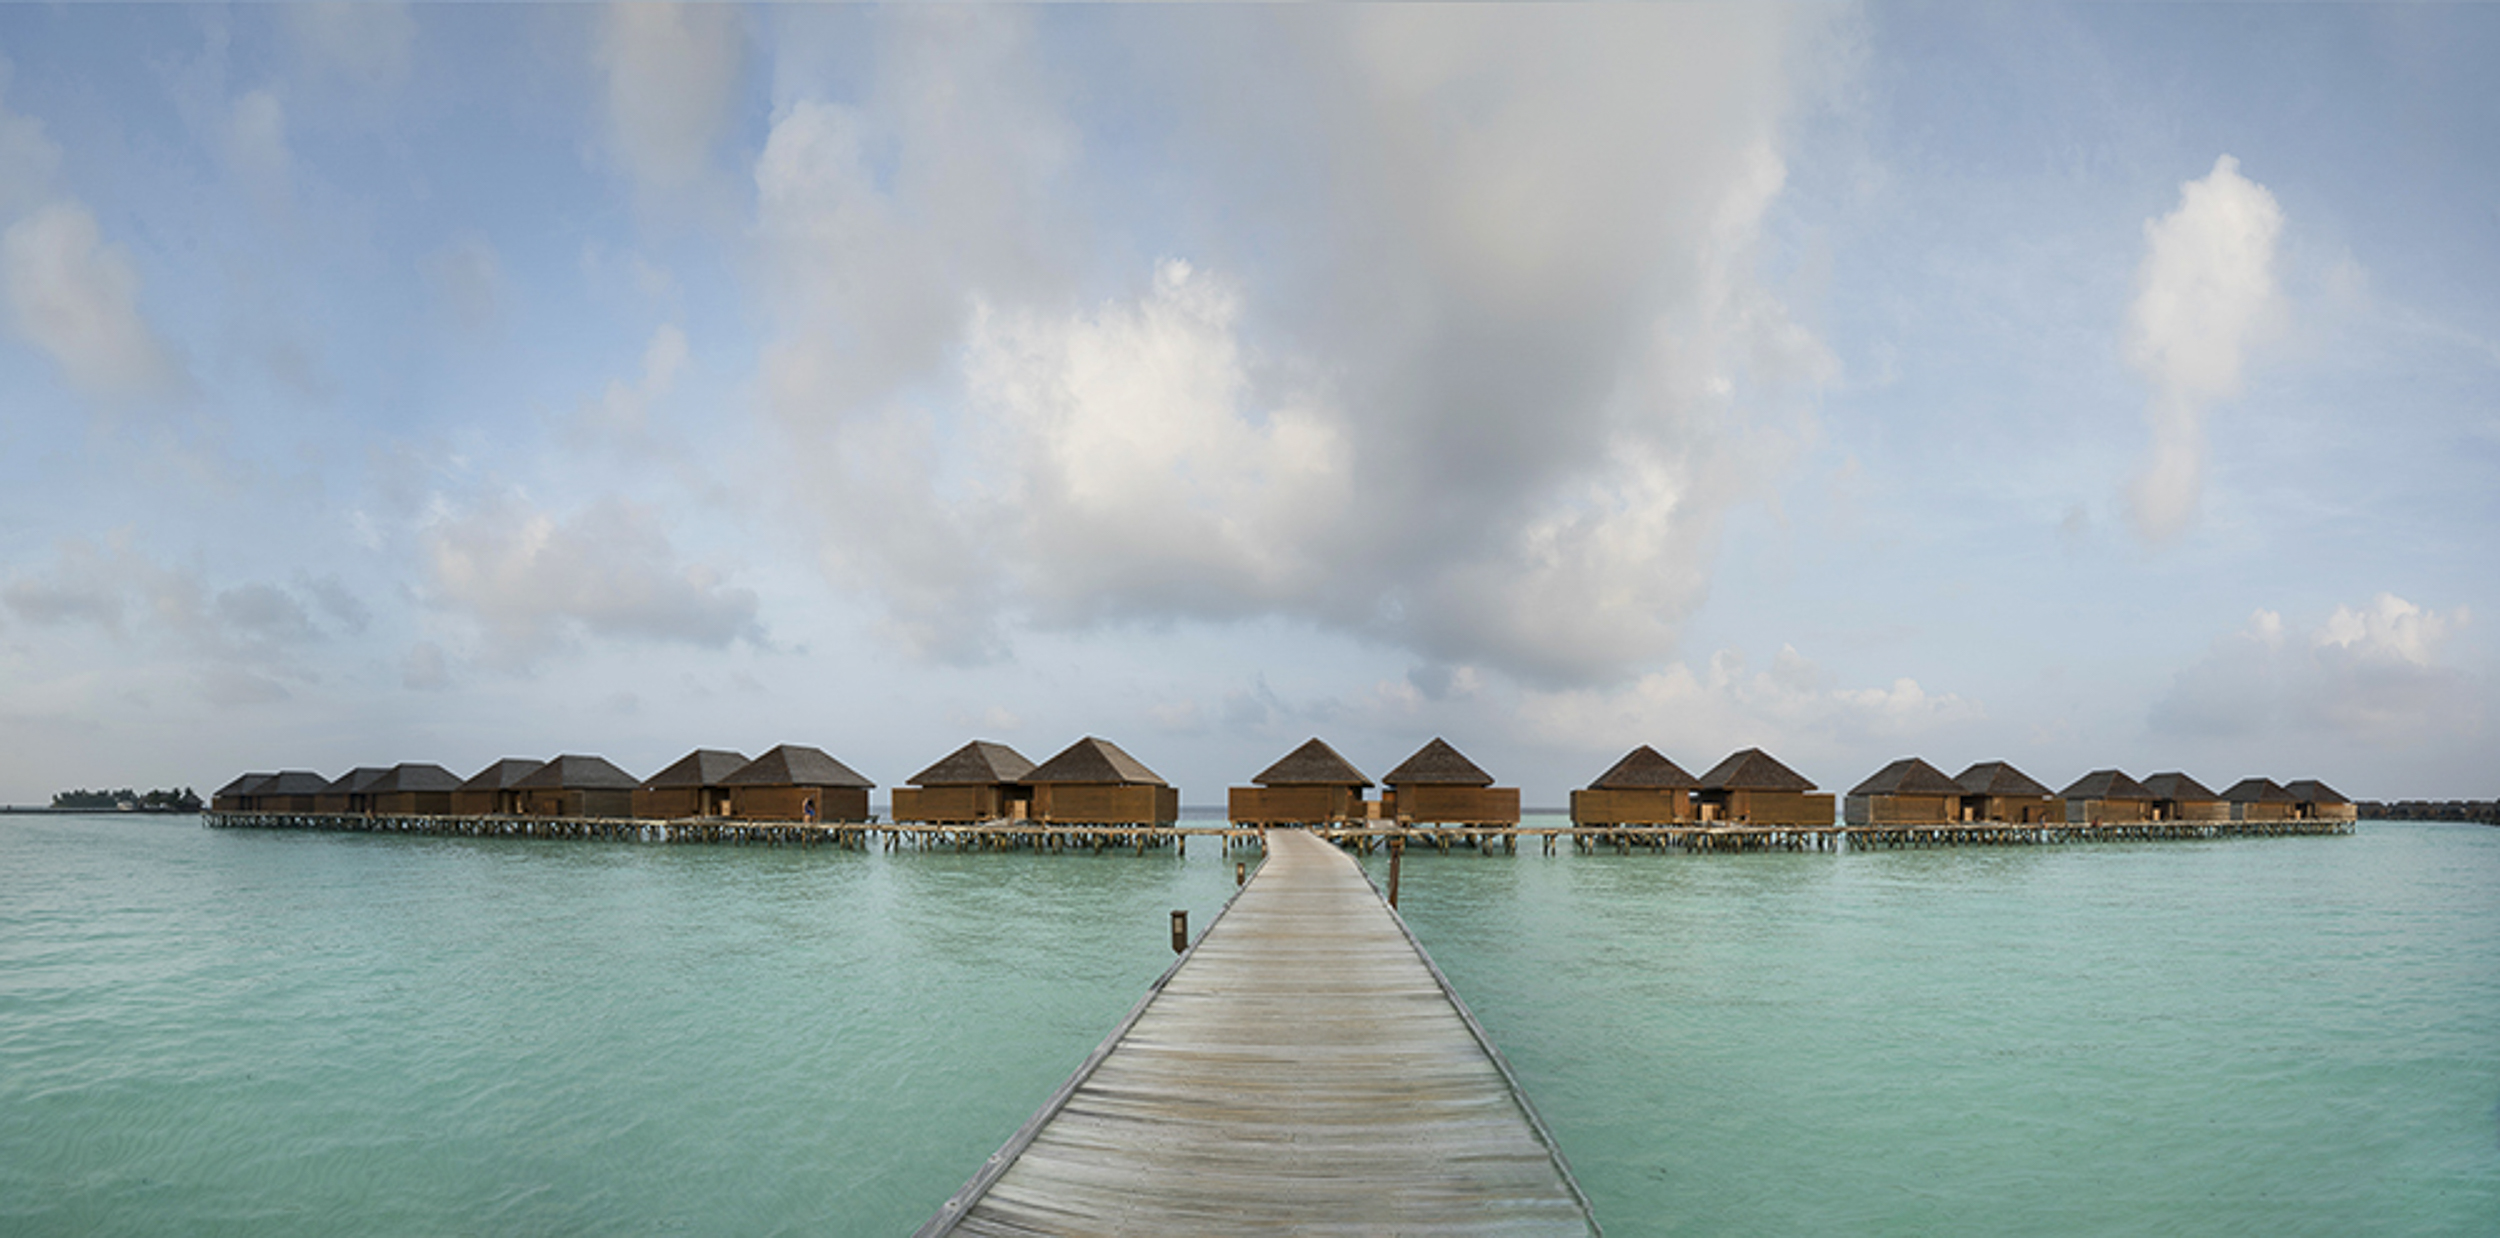 i couldn't get over the visual impact of the bungalows over the water. Just stunning.